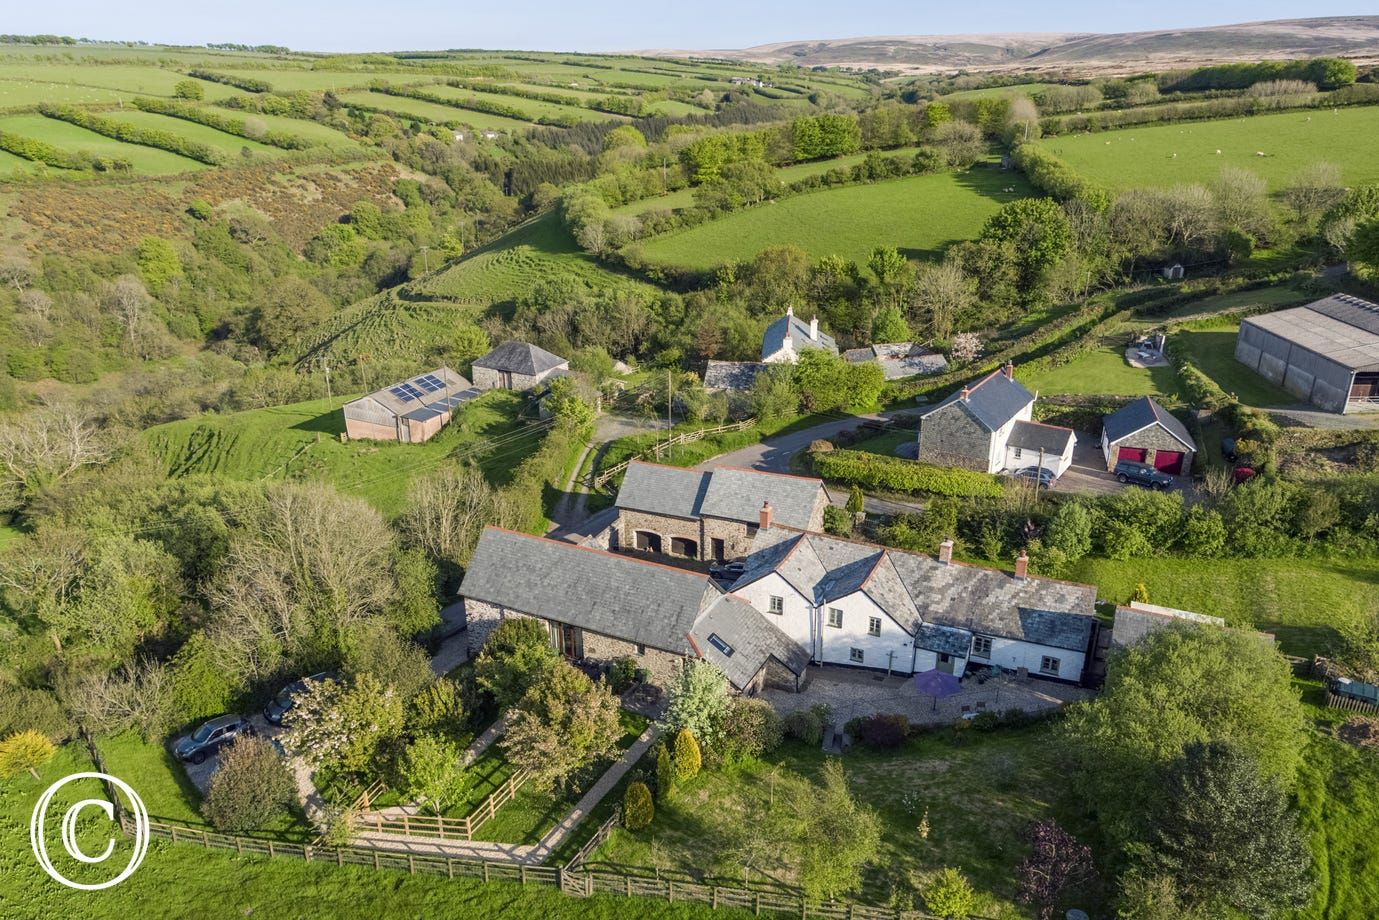 Peacefully situated in the West Lyn Valley and surrounded by the natural splendour of Exmoor, this spacious country retreat is one of only two cottages close to the owners own home